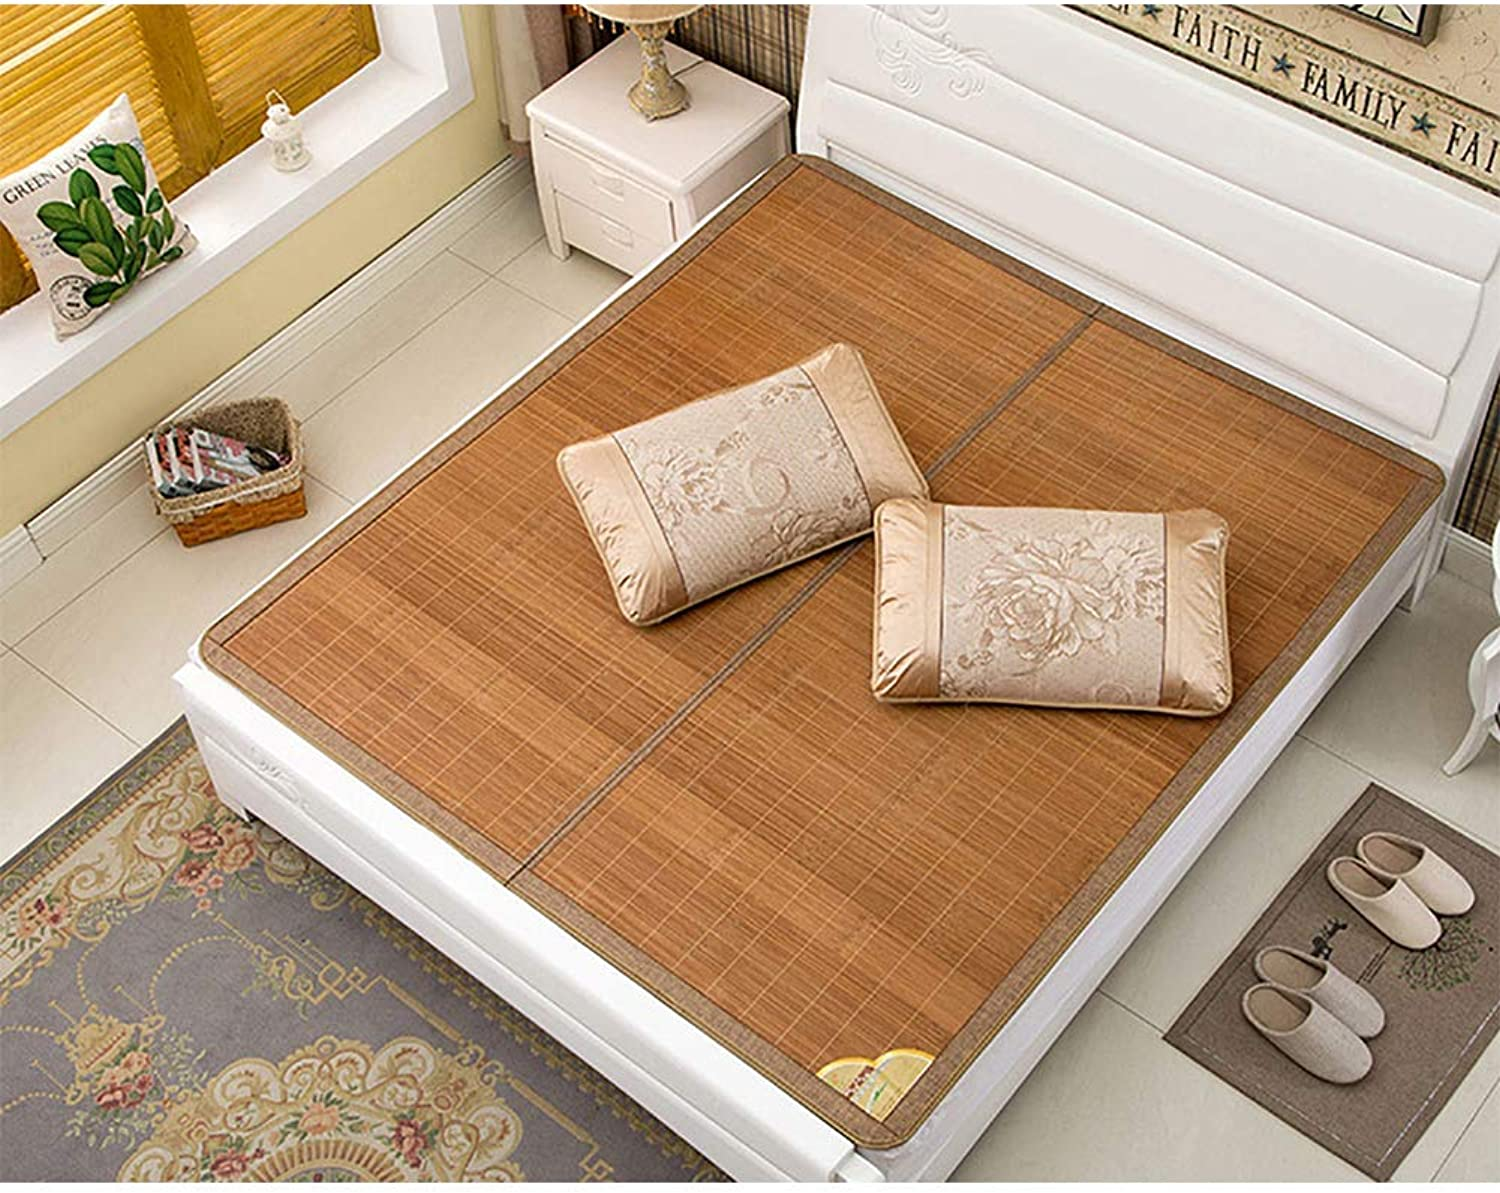 Bamboo Mattress Bamboo Cool Mattress Bamboo mat Can be Folded Cool Sleeping mats,1.8  2m